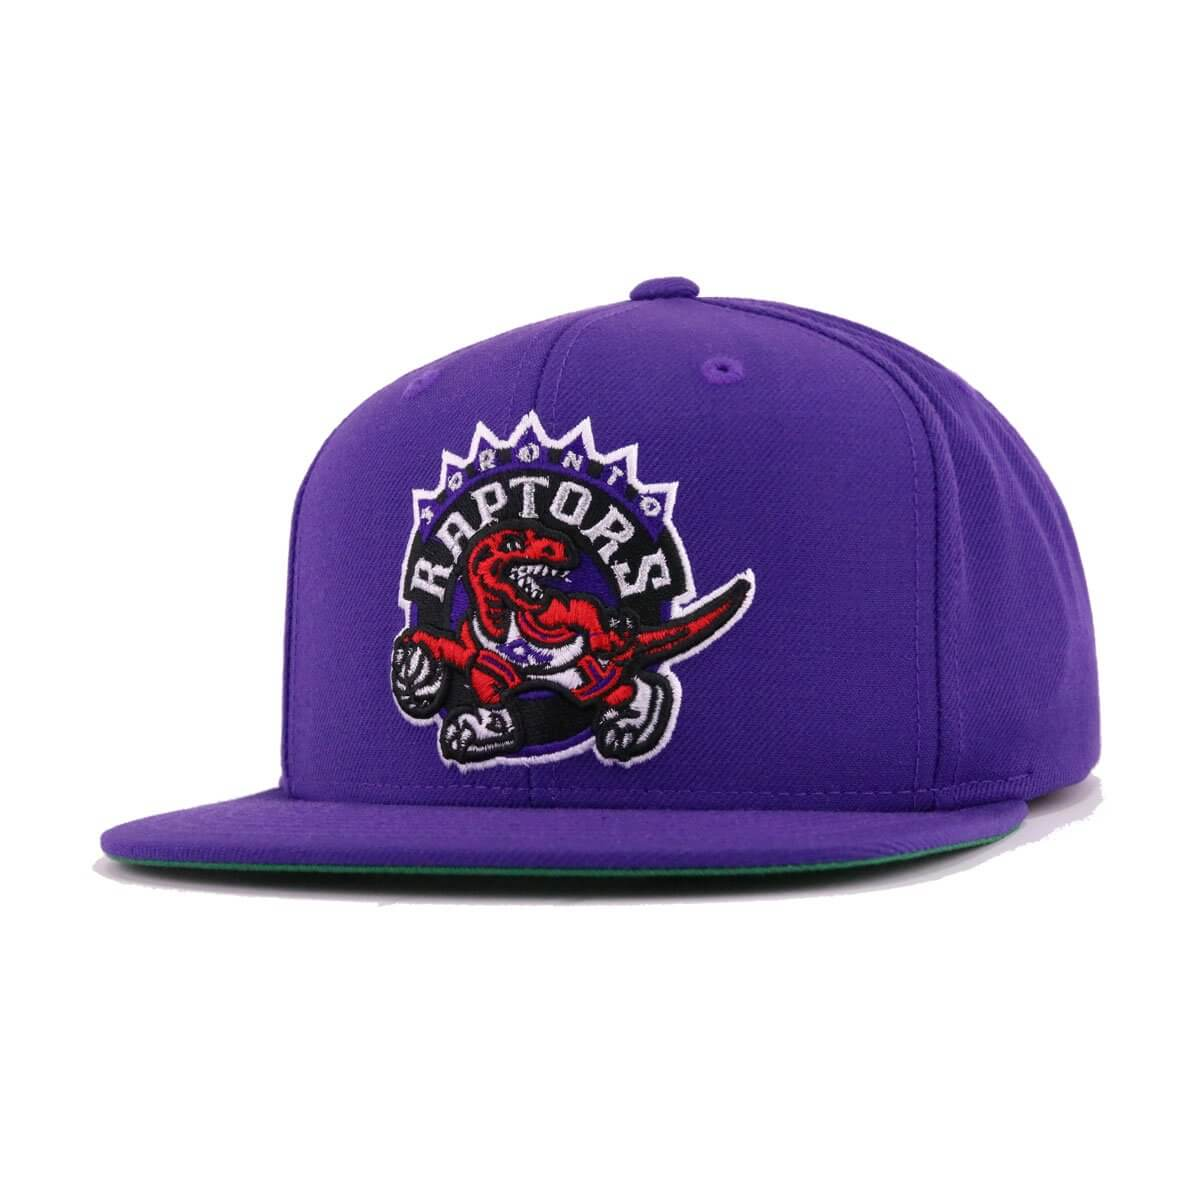 Toronto Raptors Deep Purple Hardwood Classic Mitchell and Ness Snapback